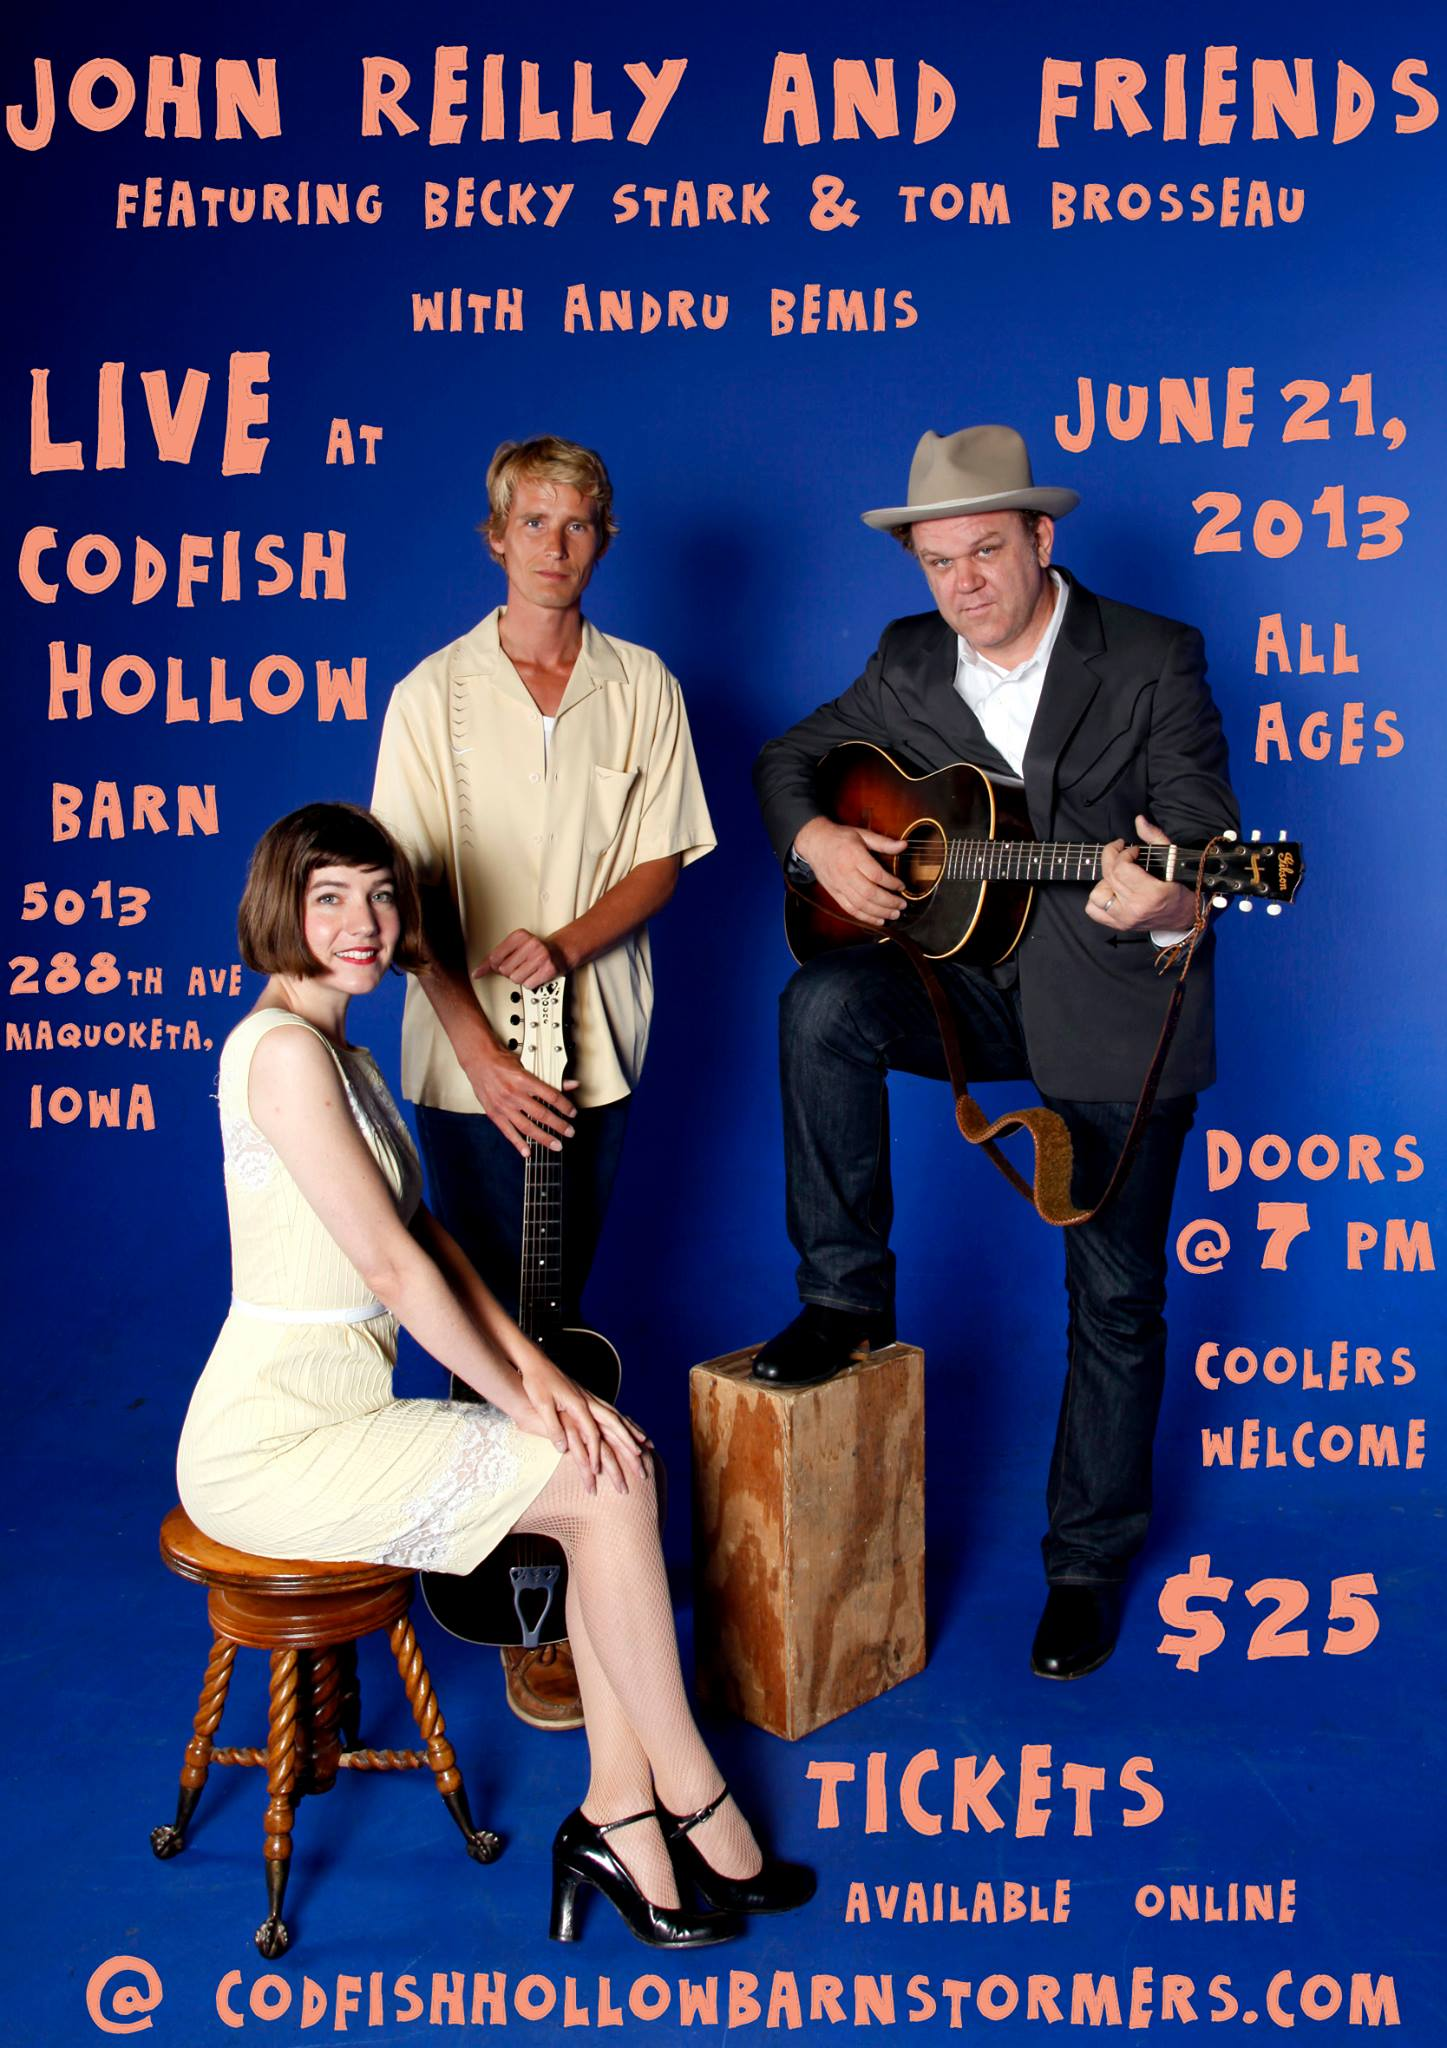 John Reilly and Friends at Codfish Hollow Barn Poster